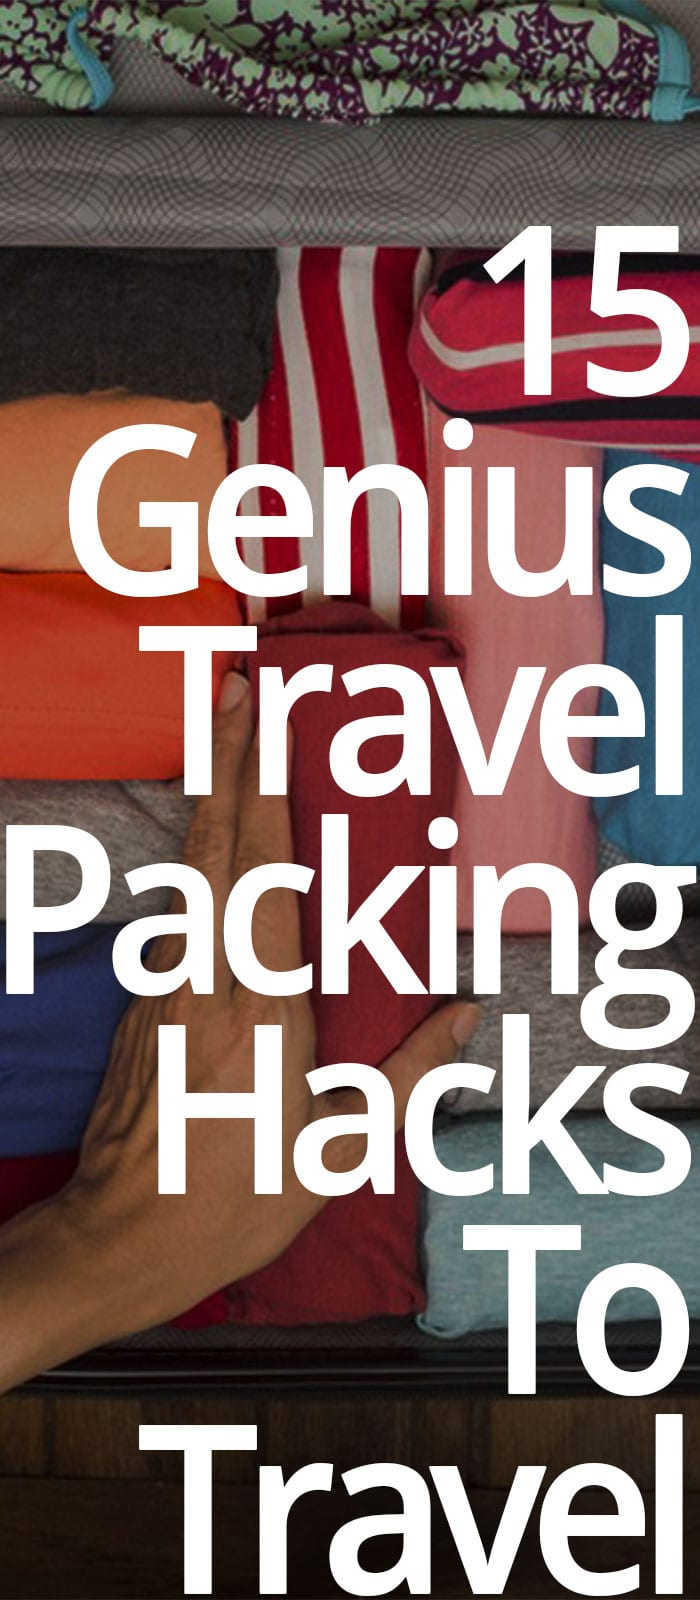 15 Genius Travel Packing Hacks To Travel Easier